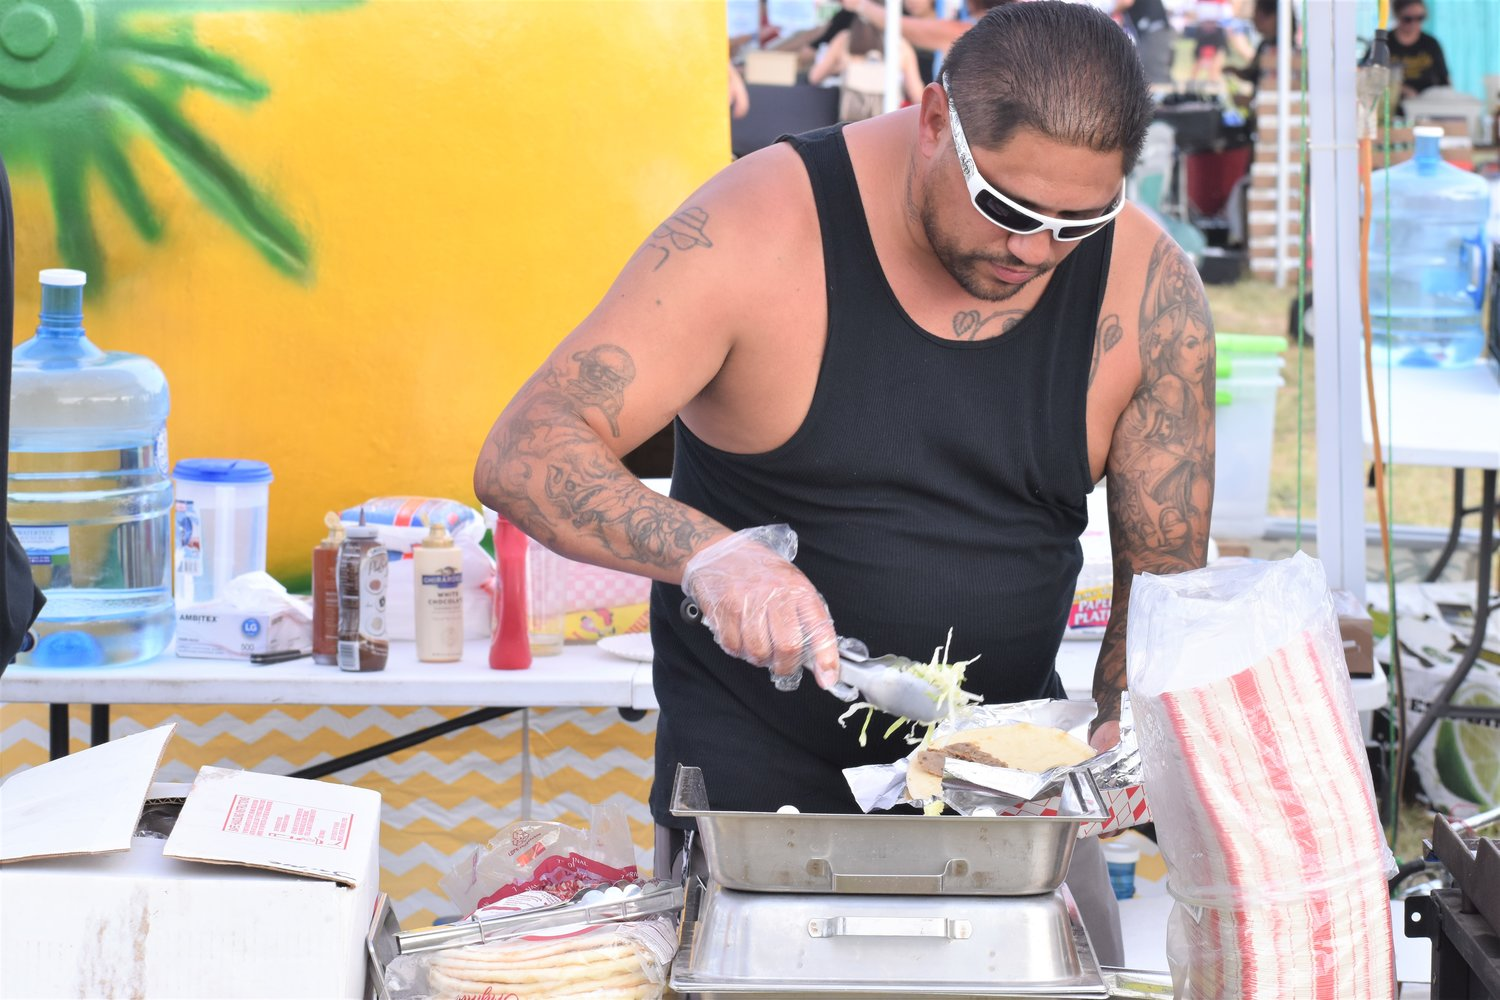 Rocky Ramirez, of the RJ Roasting booth, prepares a gyro for attendees at Liberty Fest in Leander on Thursday.